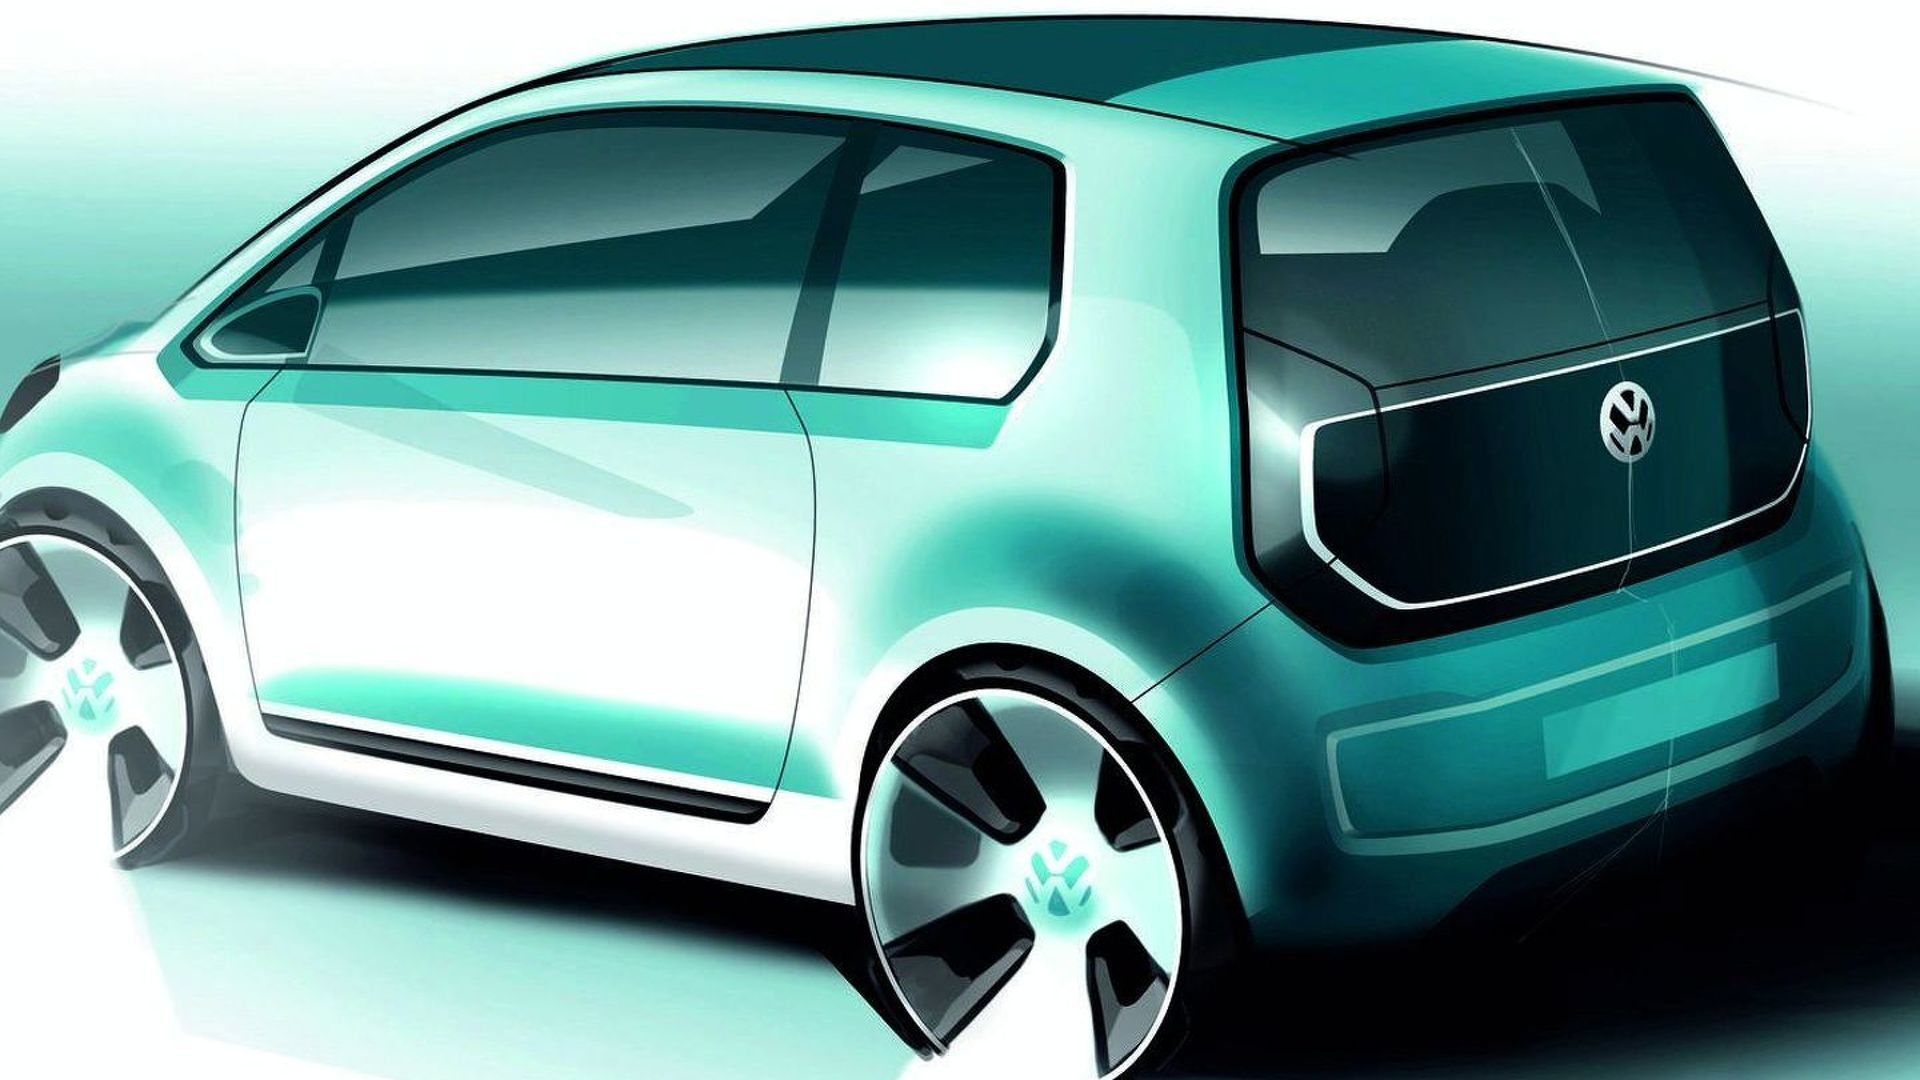 2013 Volkswagen E-Up! Headed For U.S. Market